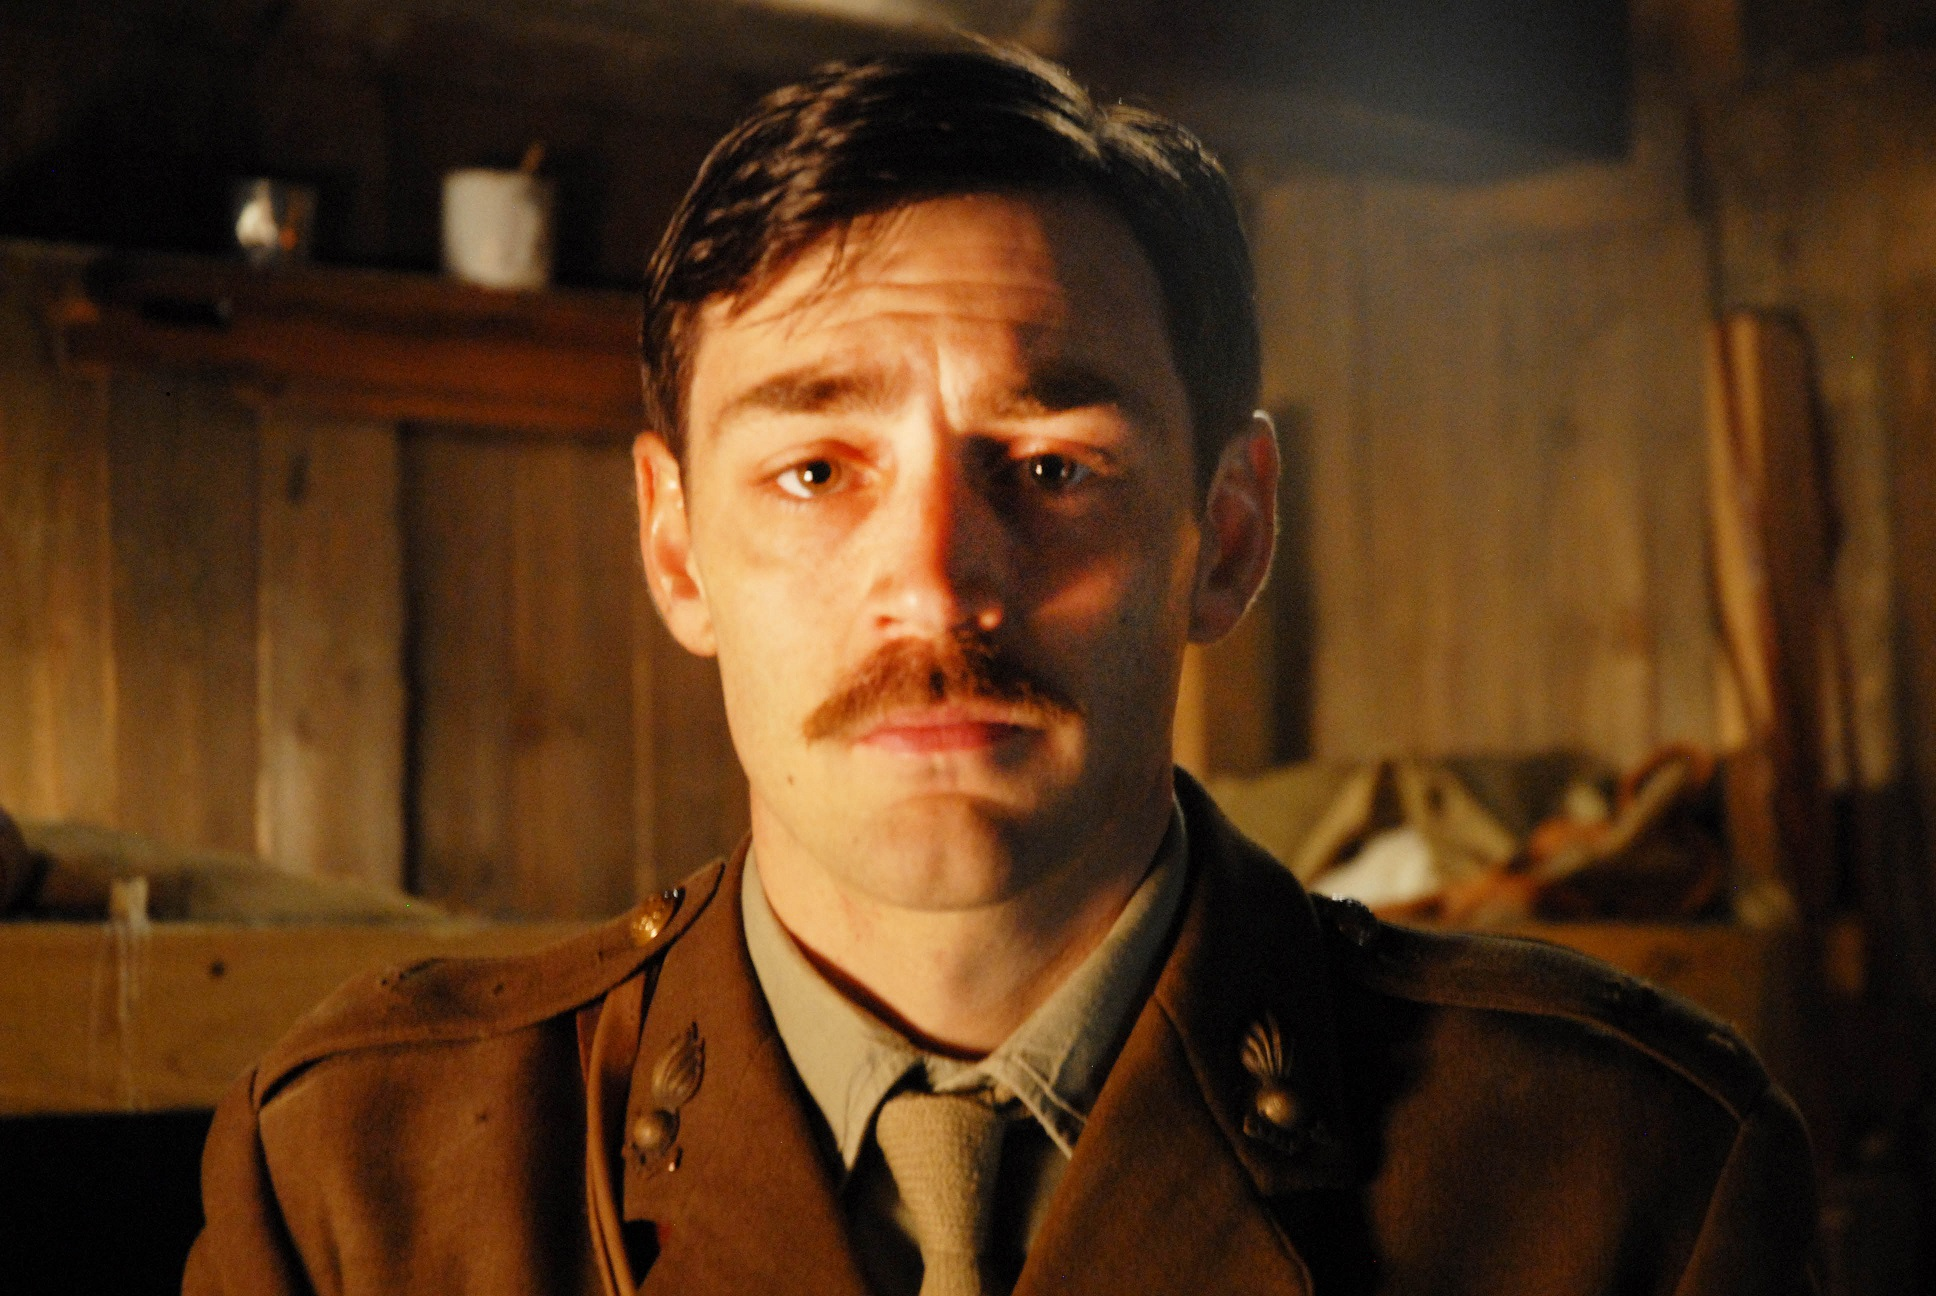 The Great War: The People's Story ITV GW-MATTHEW%20MCNULTY%20plays%20Alan%20Lloyd%2C%20an%20upper-crust%20young%20man%20from%20Birmingham